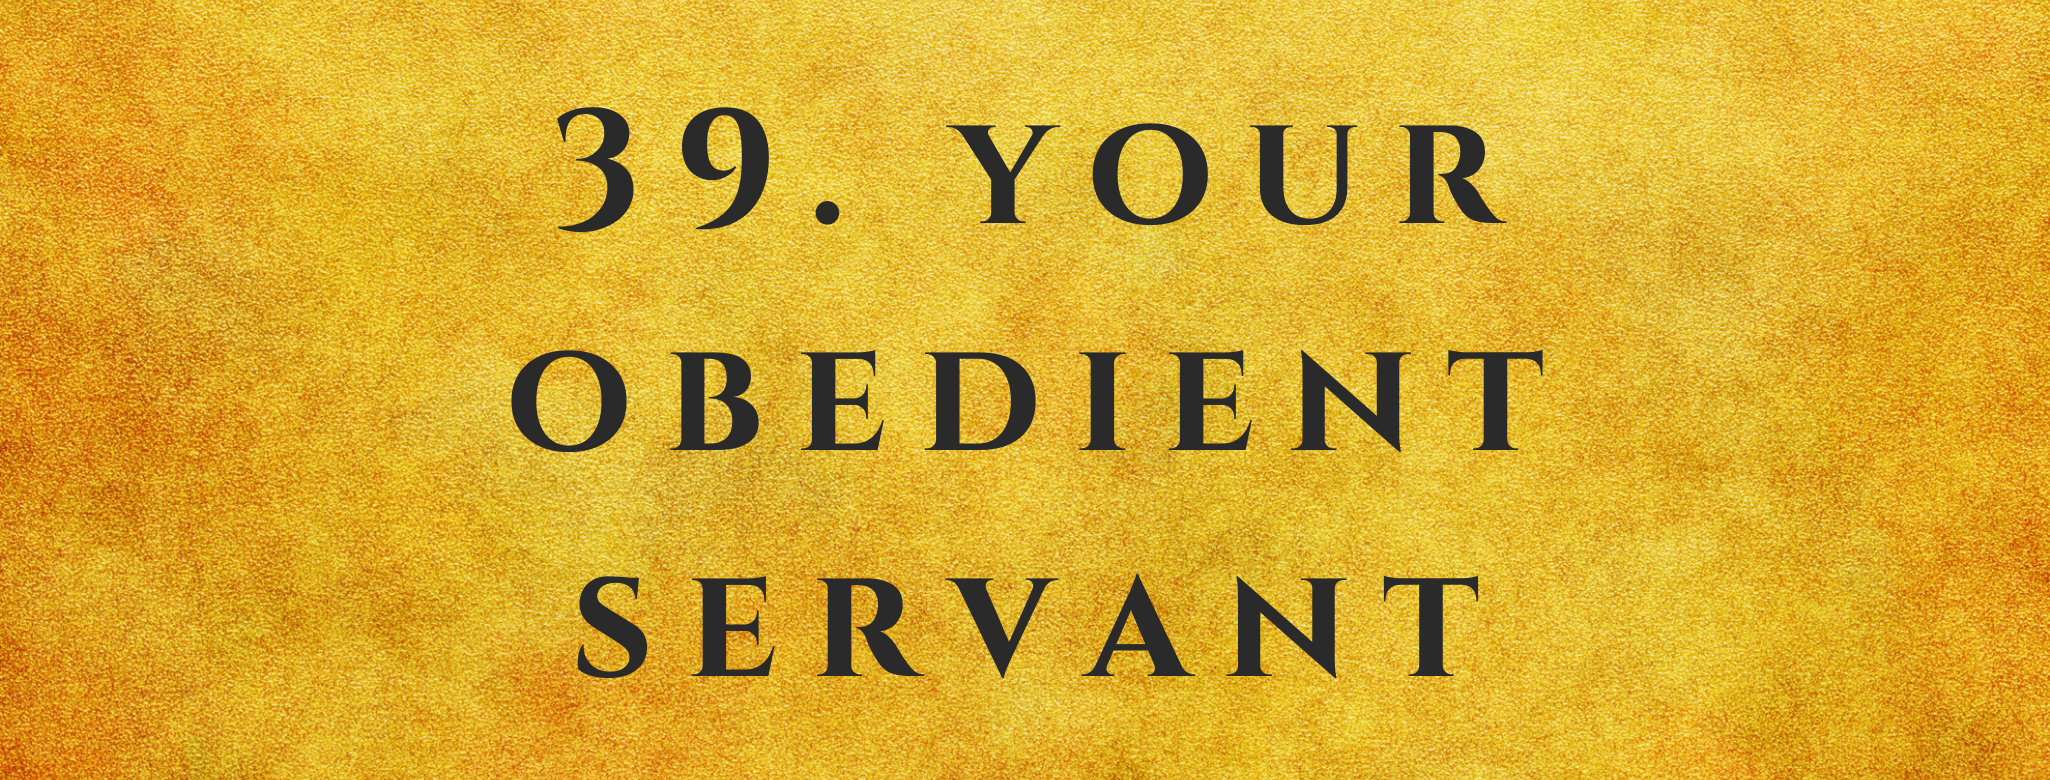 #39 Your Obedient Servant